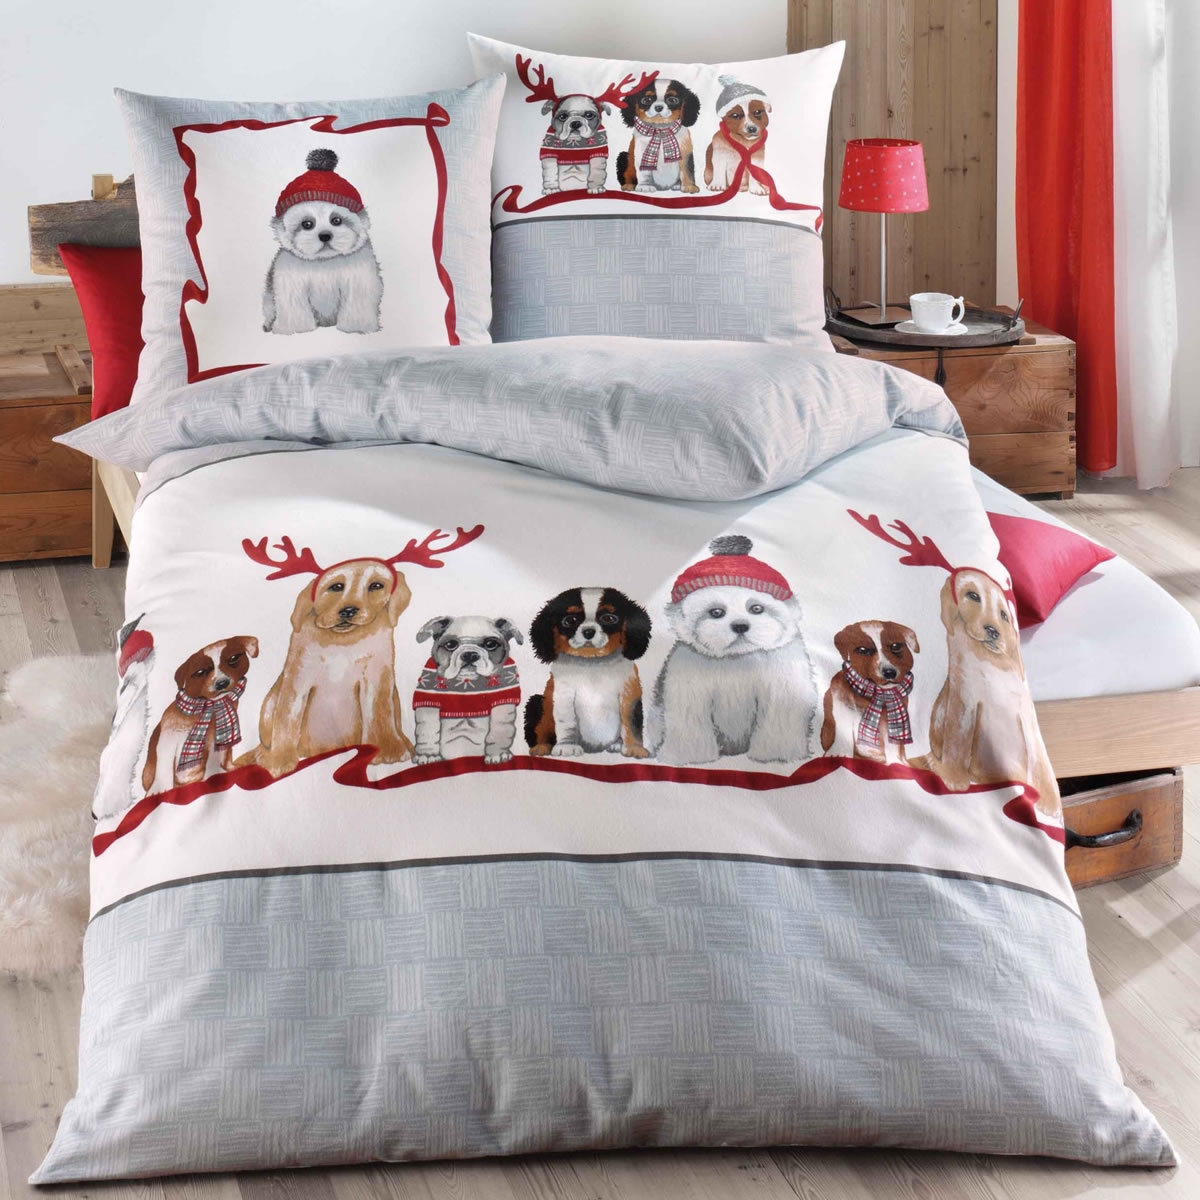 kaeppel biber bettw sche 135x200 cm design 76669 dogs grau winter. Black Bedroom Furniture Sets. Home Design Ideas